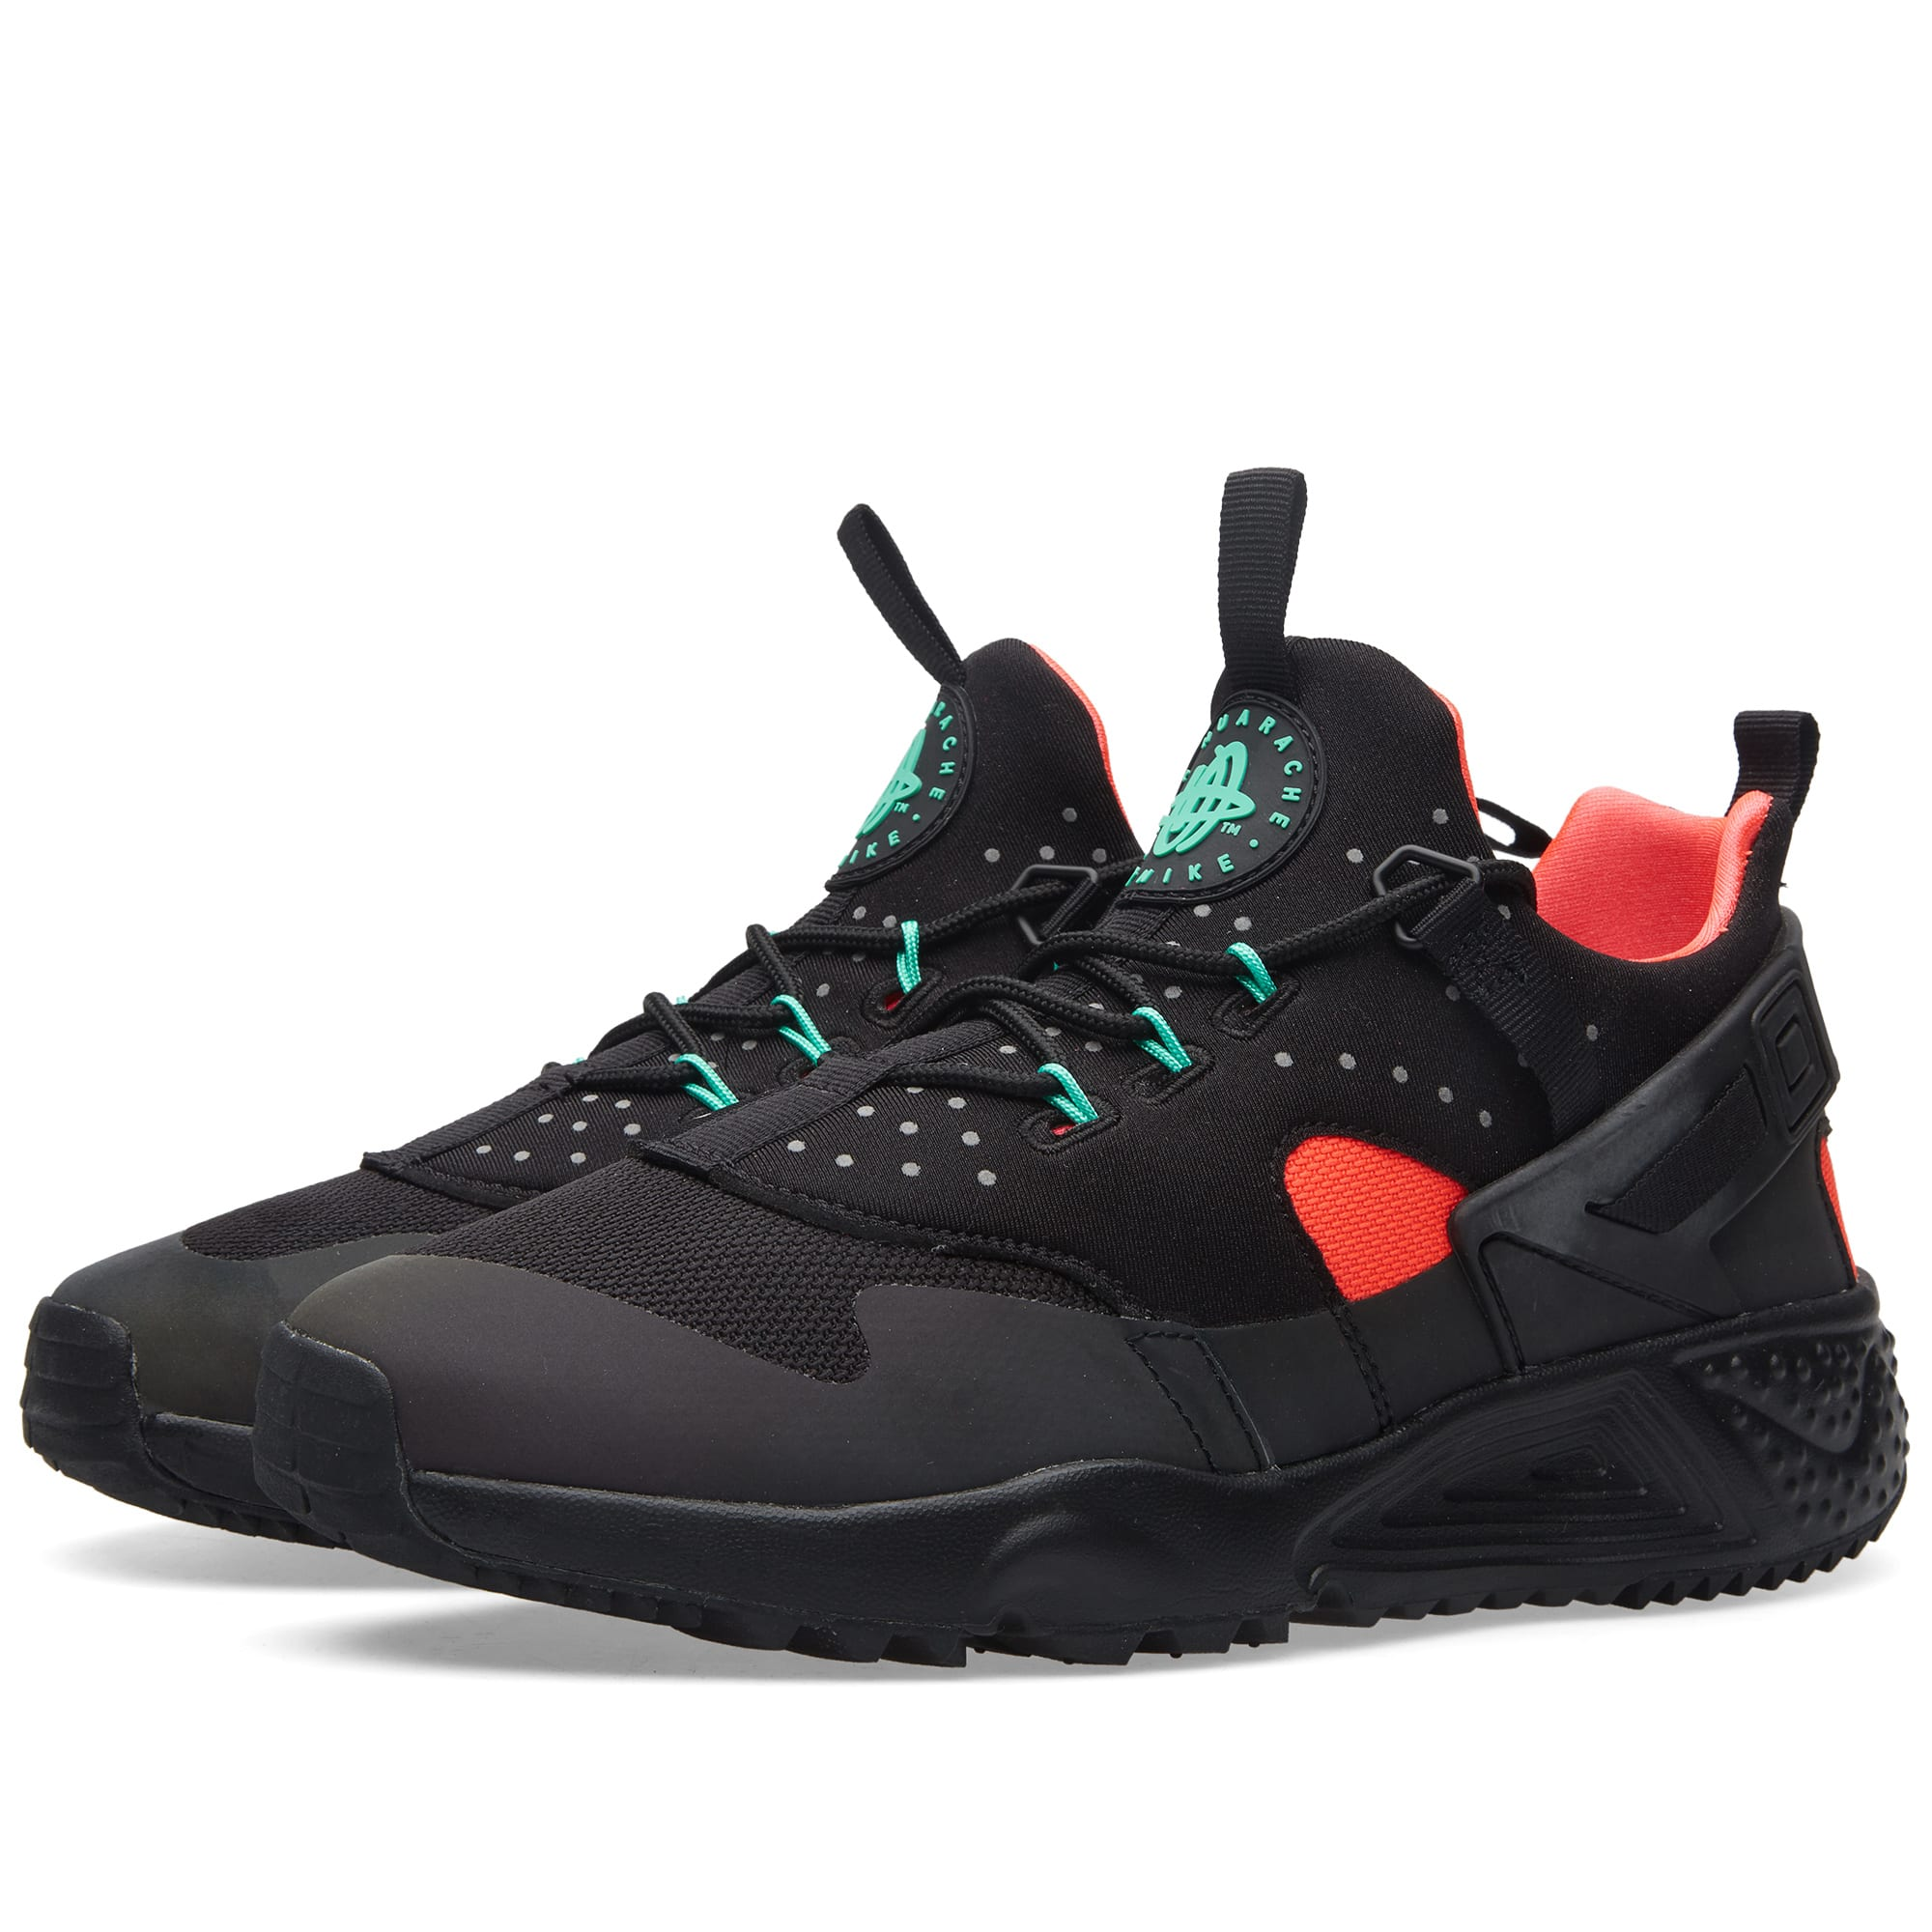 official photos 3fa31 4851d Nike Air Huarache Utility Premium Black   Bright Crimson   END.